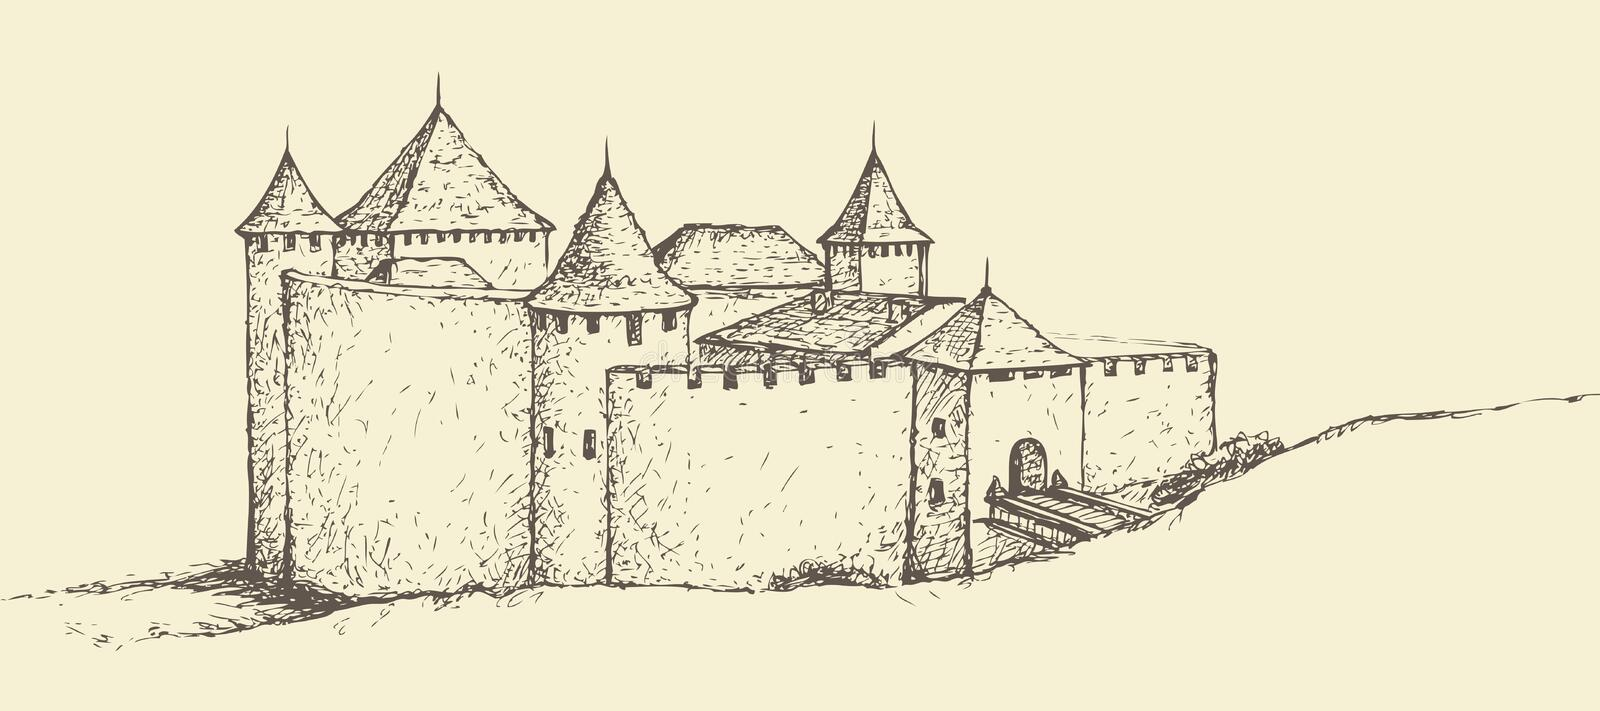 Khotyn Fortress, Ukraine. Vector sketch. Khotin Fortress, Ukraine. Stone fortification complex on bank of Dniester River. Vector monochrome freehand ink drawn stock illustration